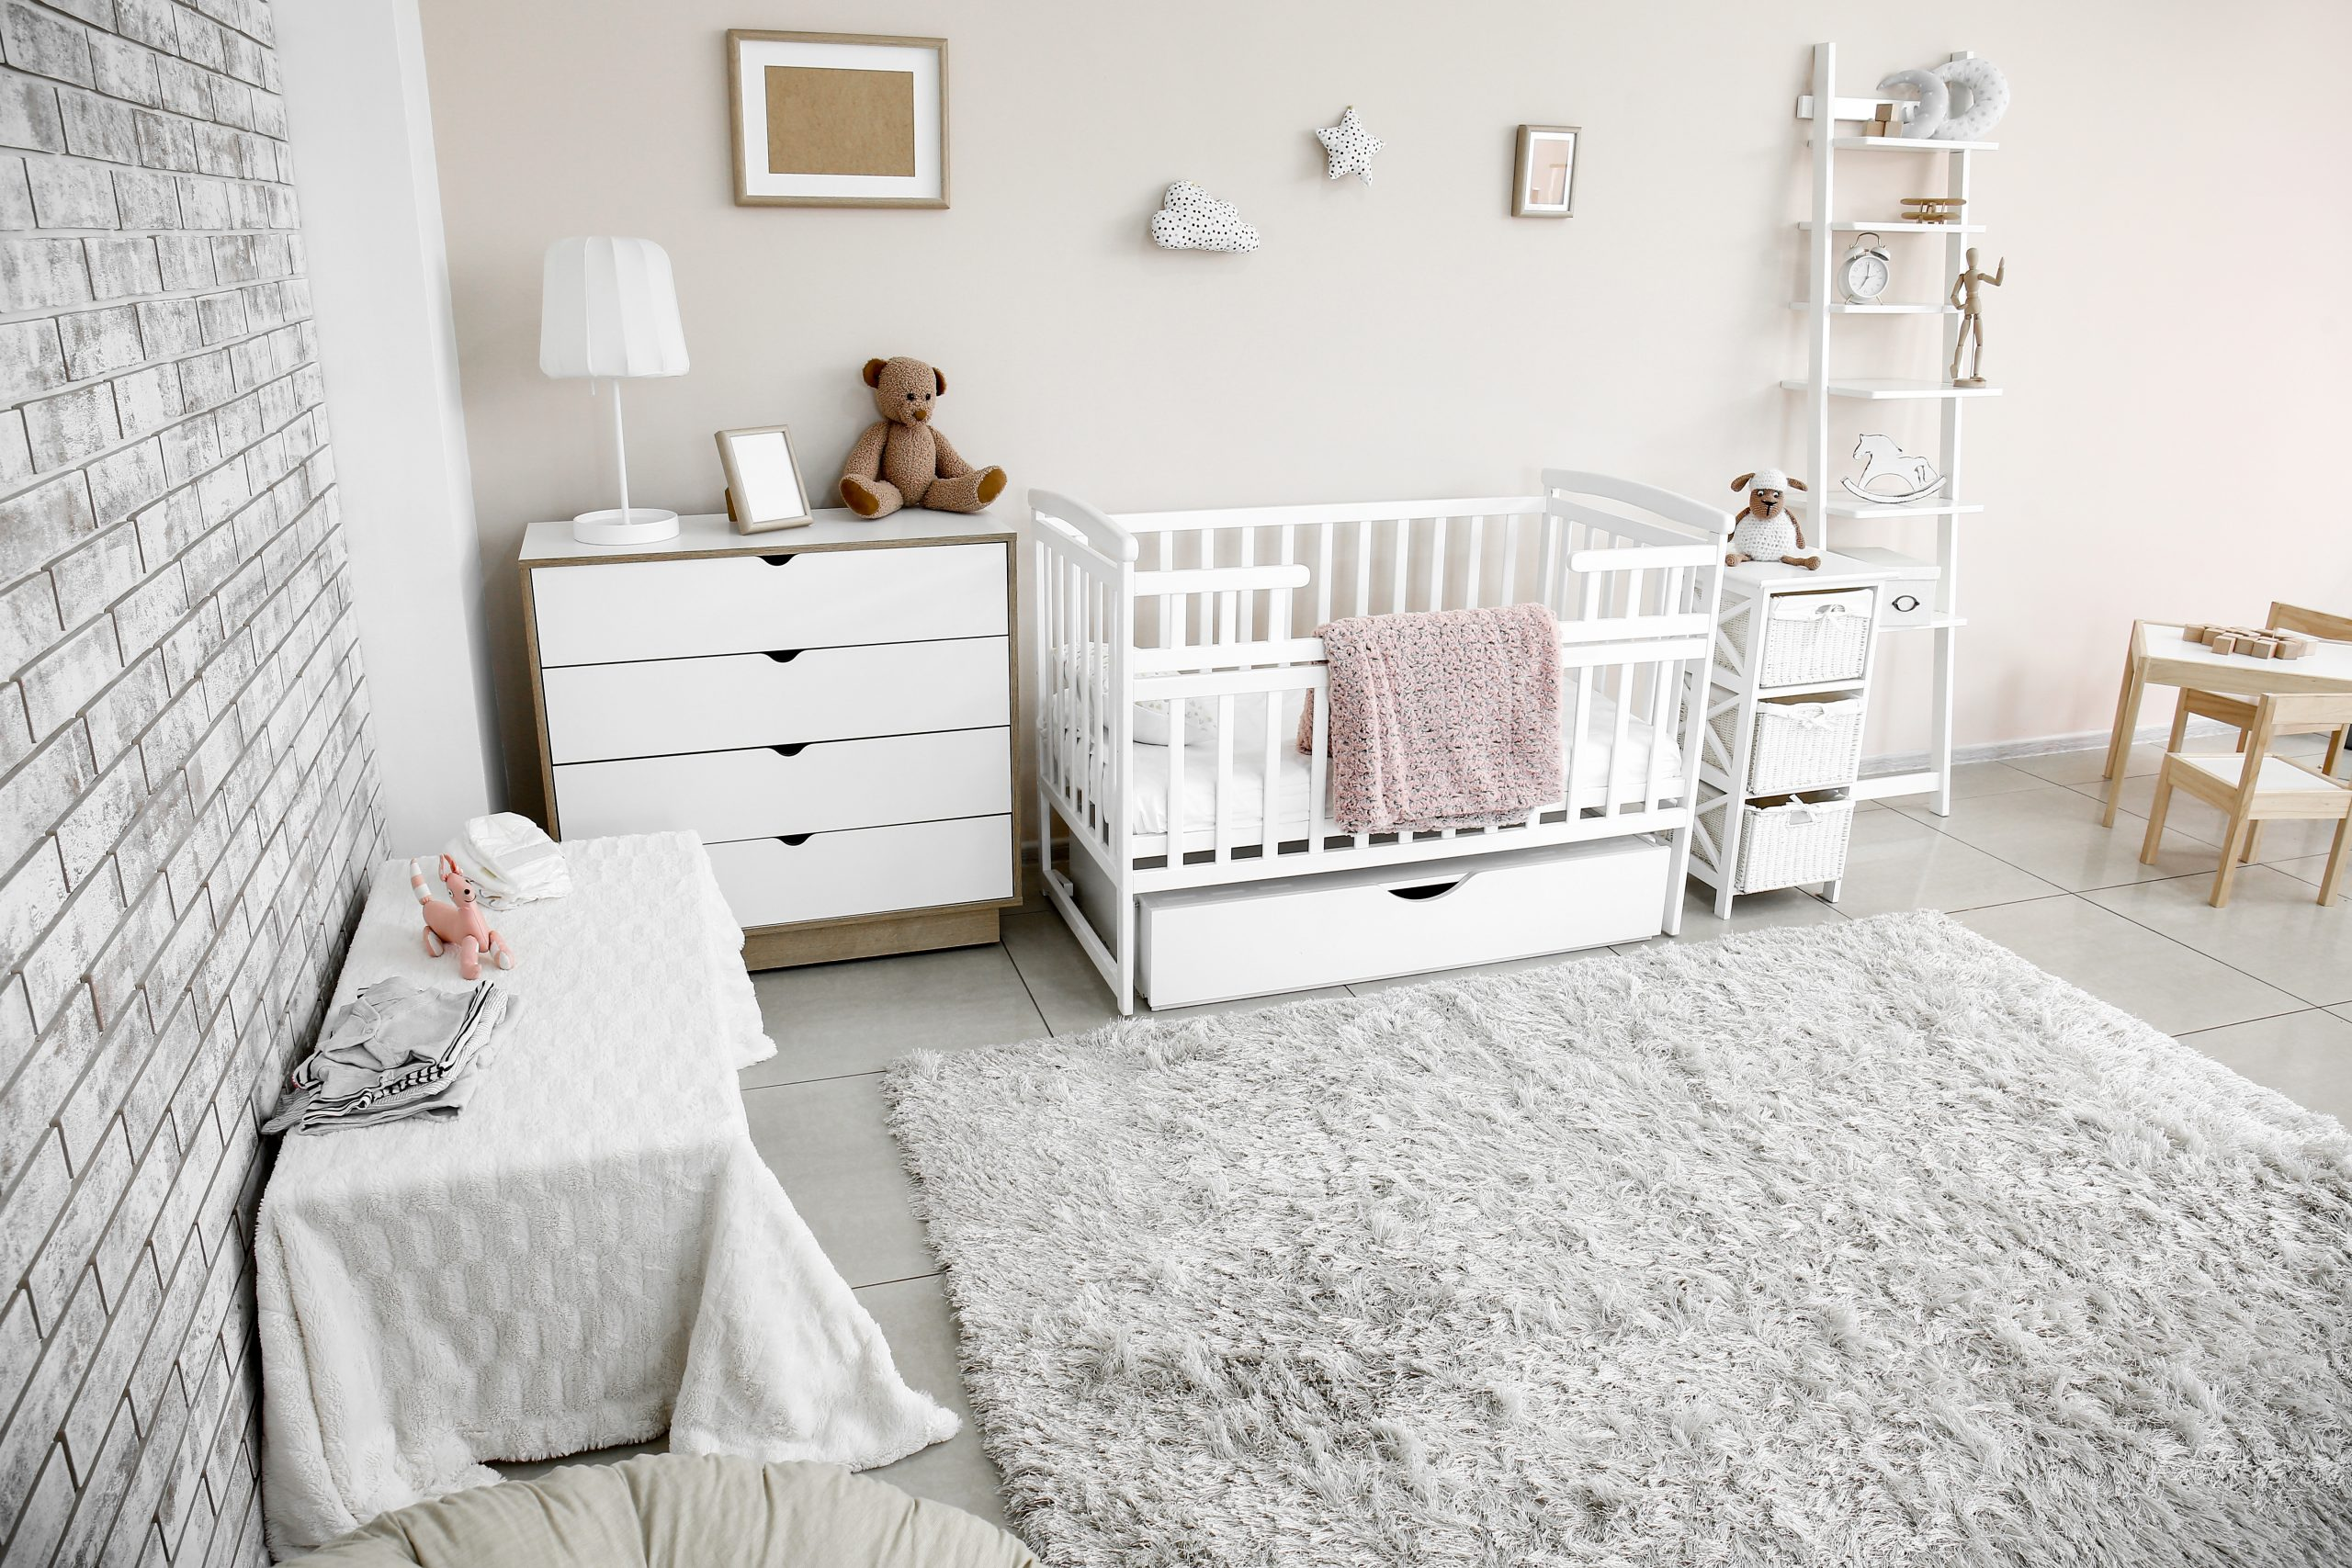 Interior of stylish children's room with baby bed